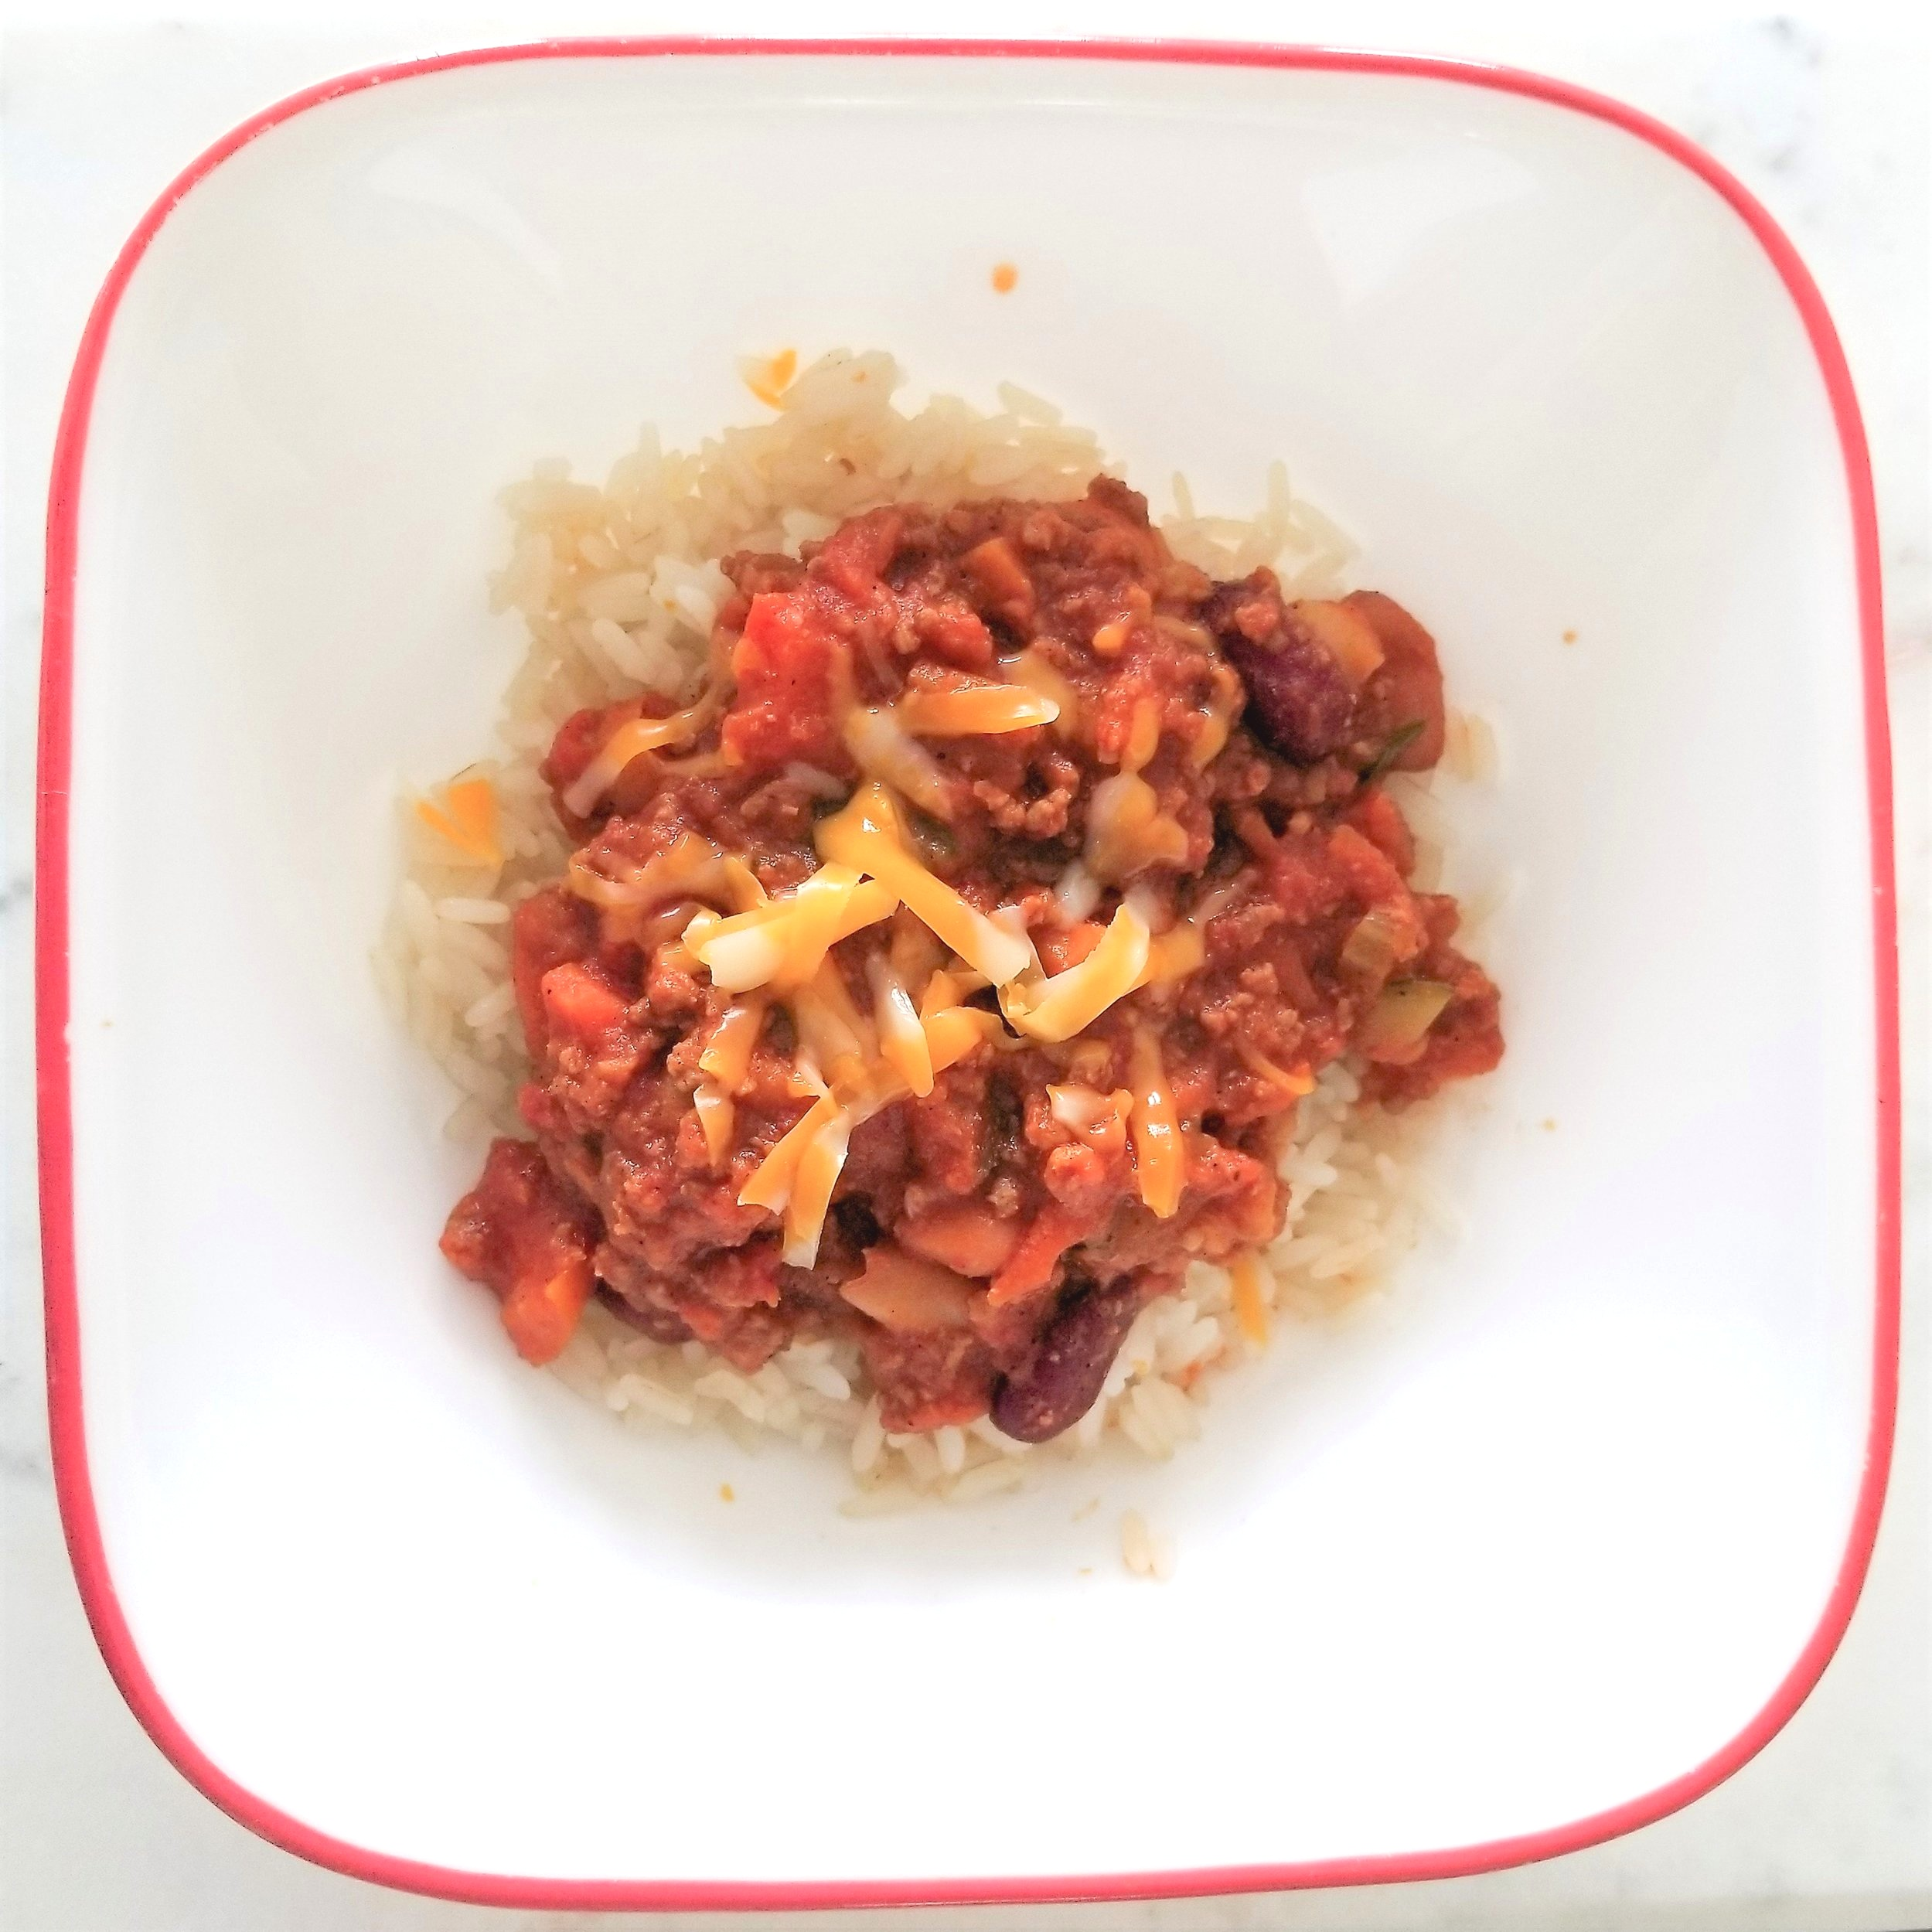 Hearty chili served over rice